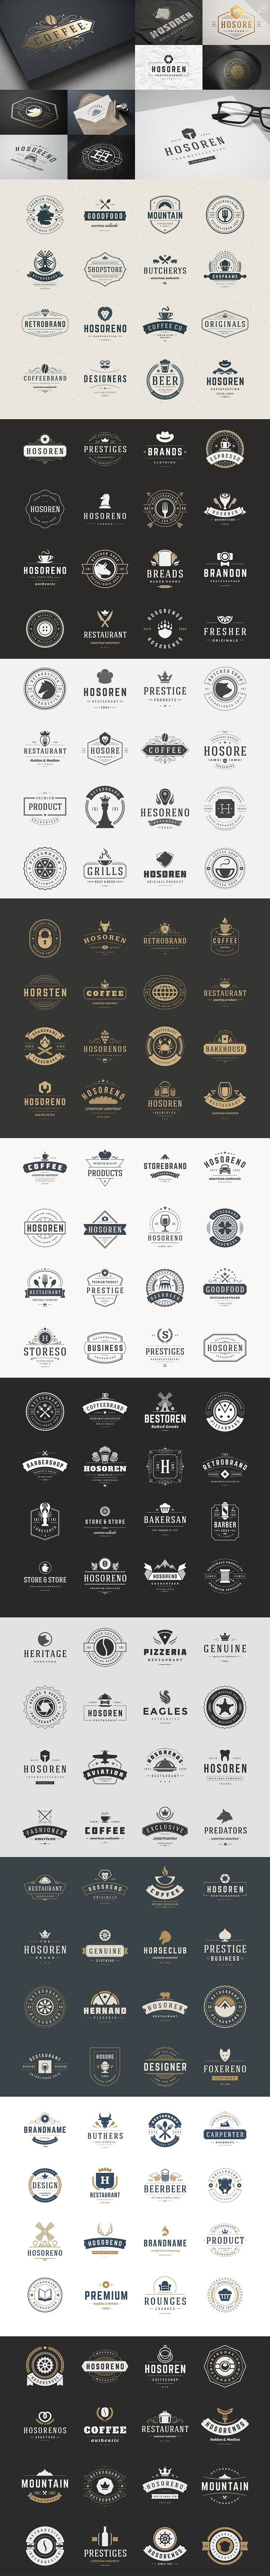 Top Result Awesome Badge Buddy Template Image Kdh - Badge buddy template